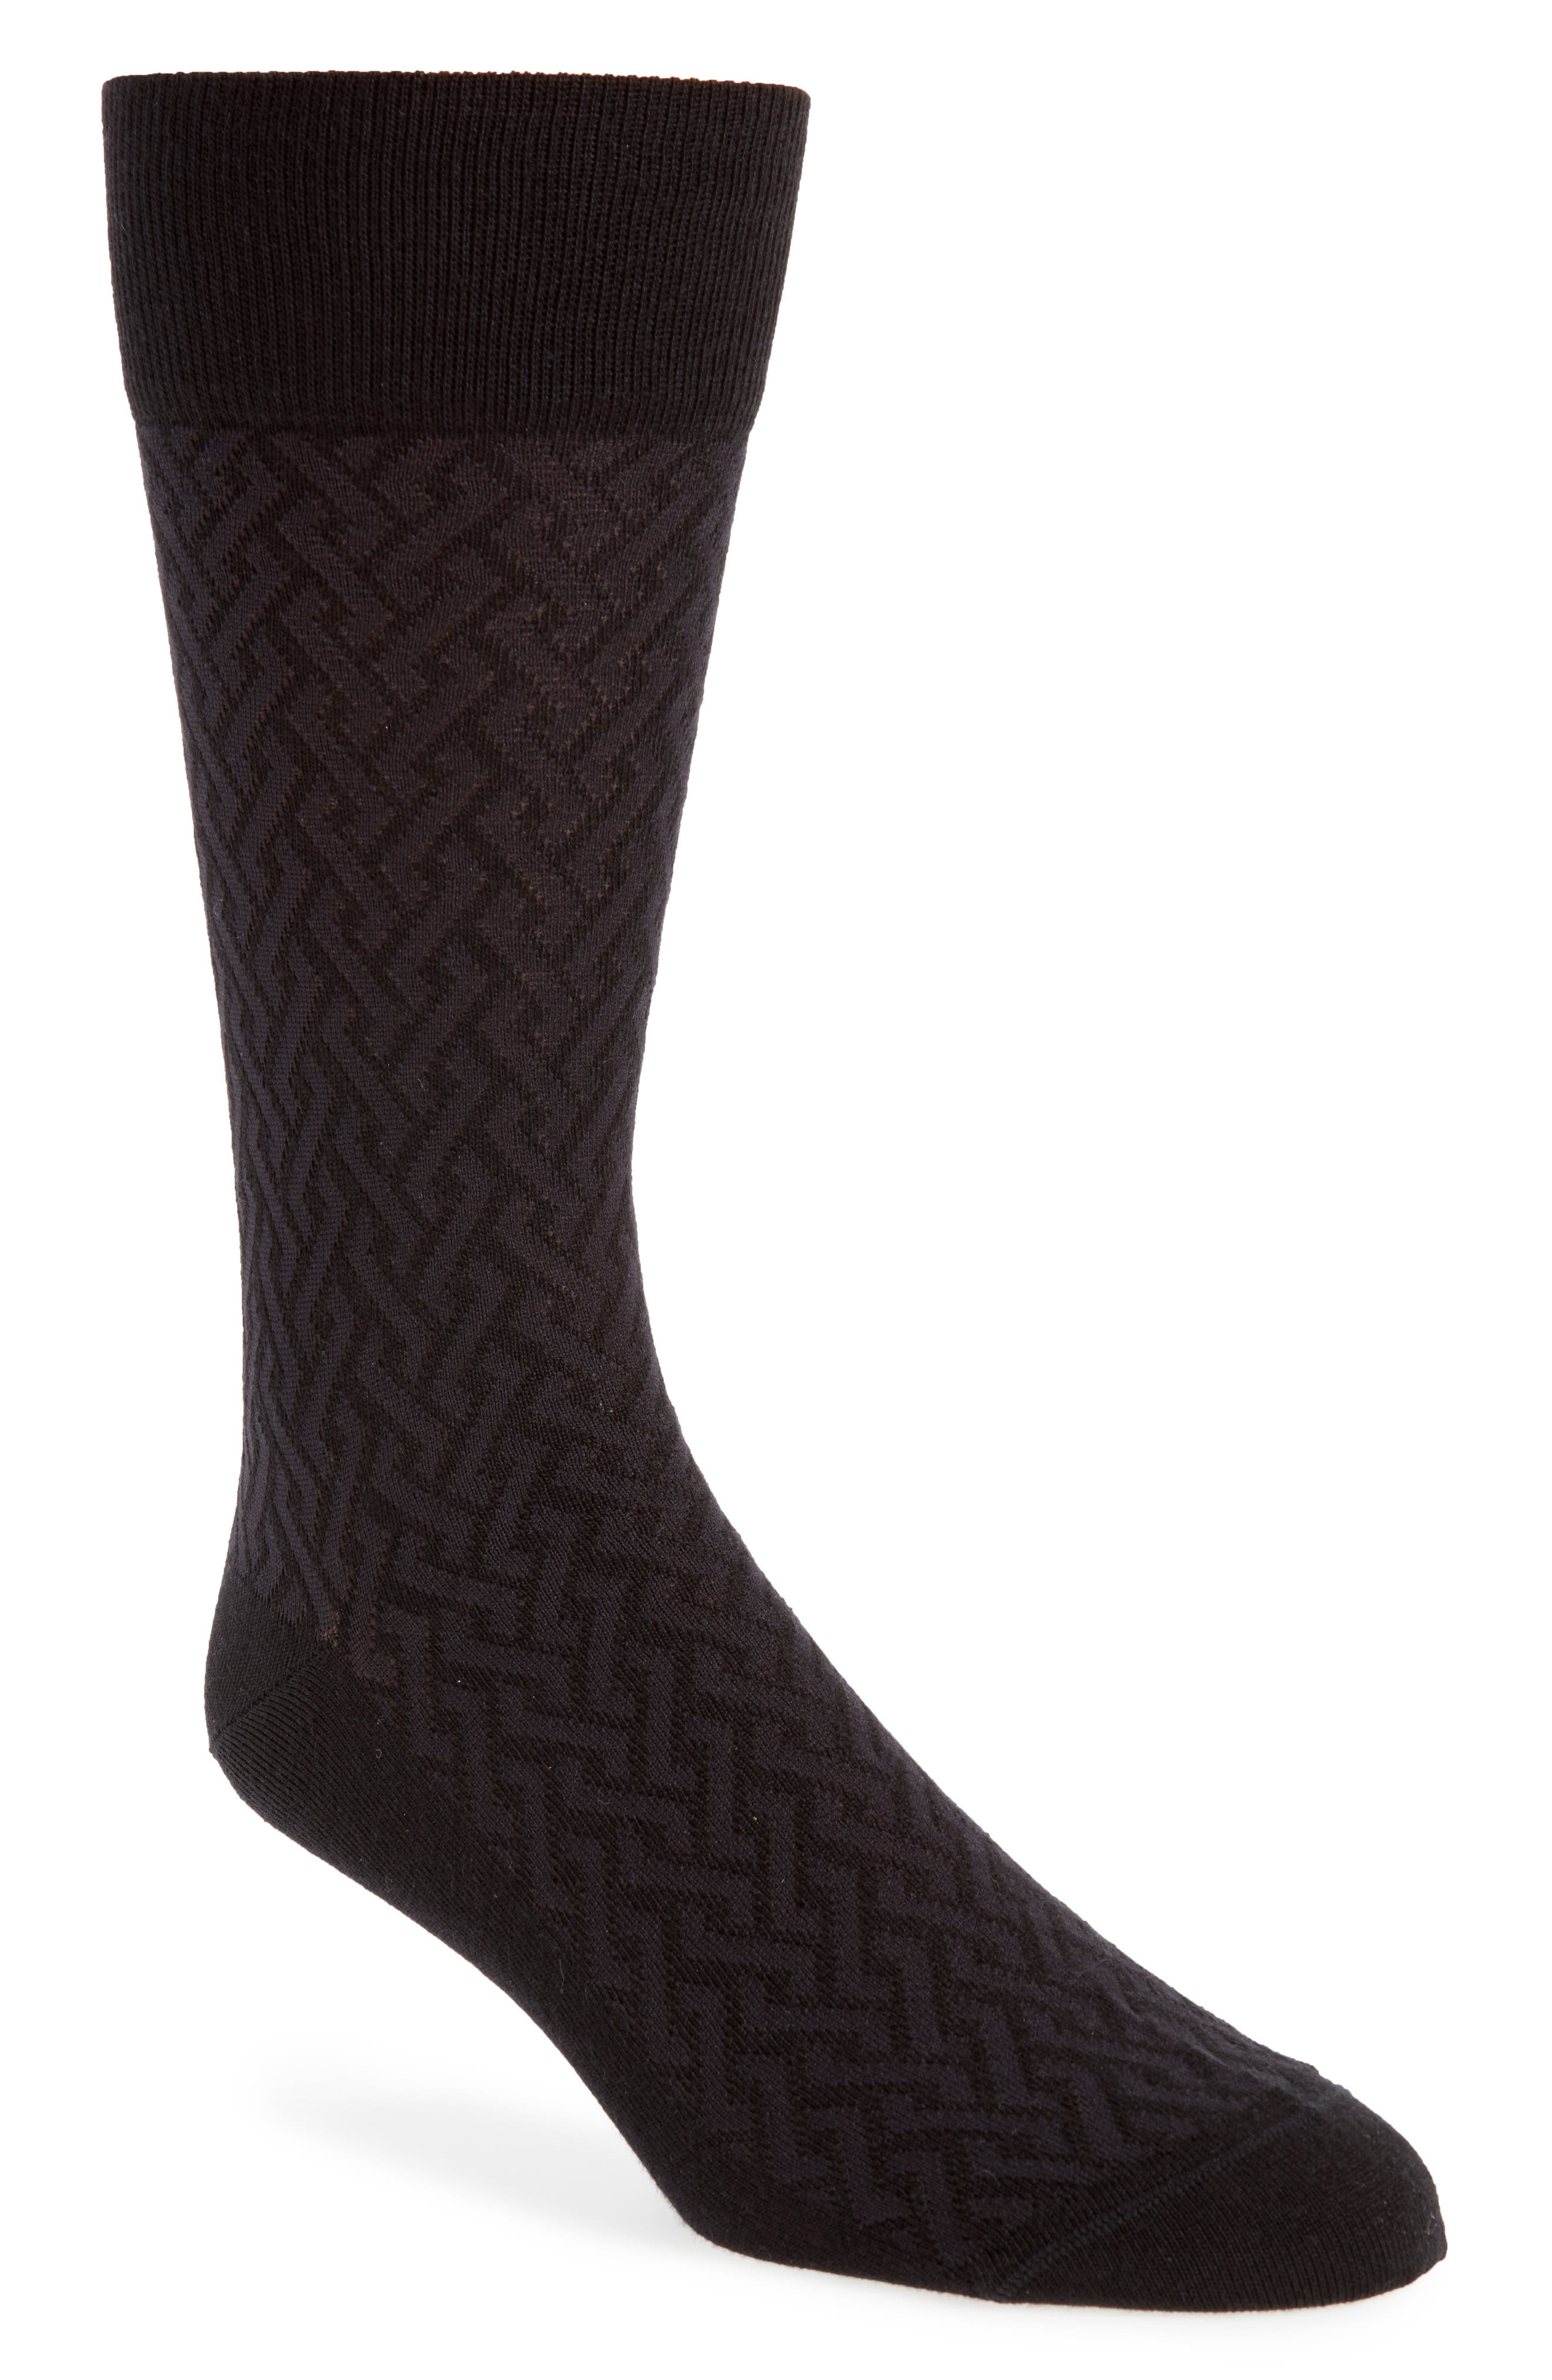 Intertwined Lines Socks,                         Main,                         color, BLACK